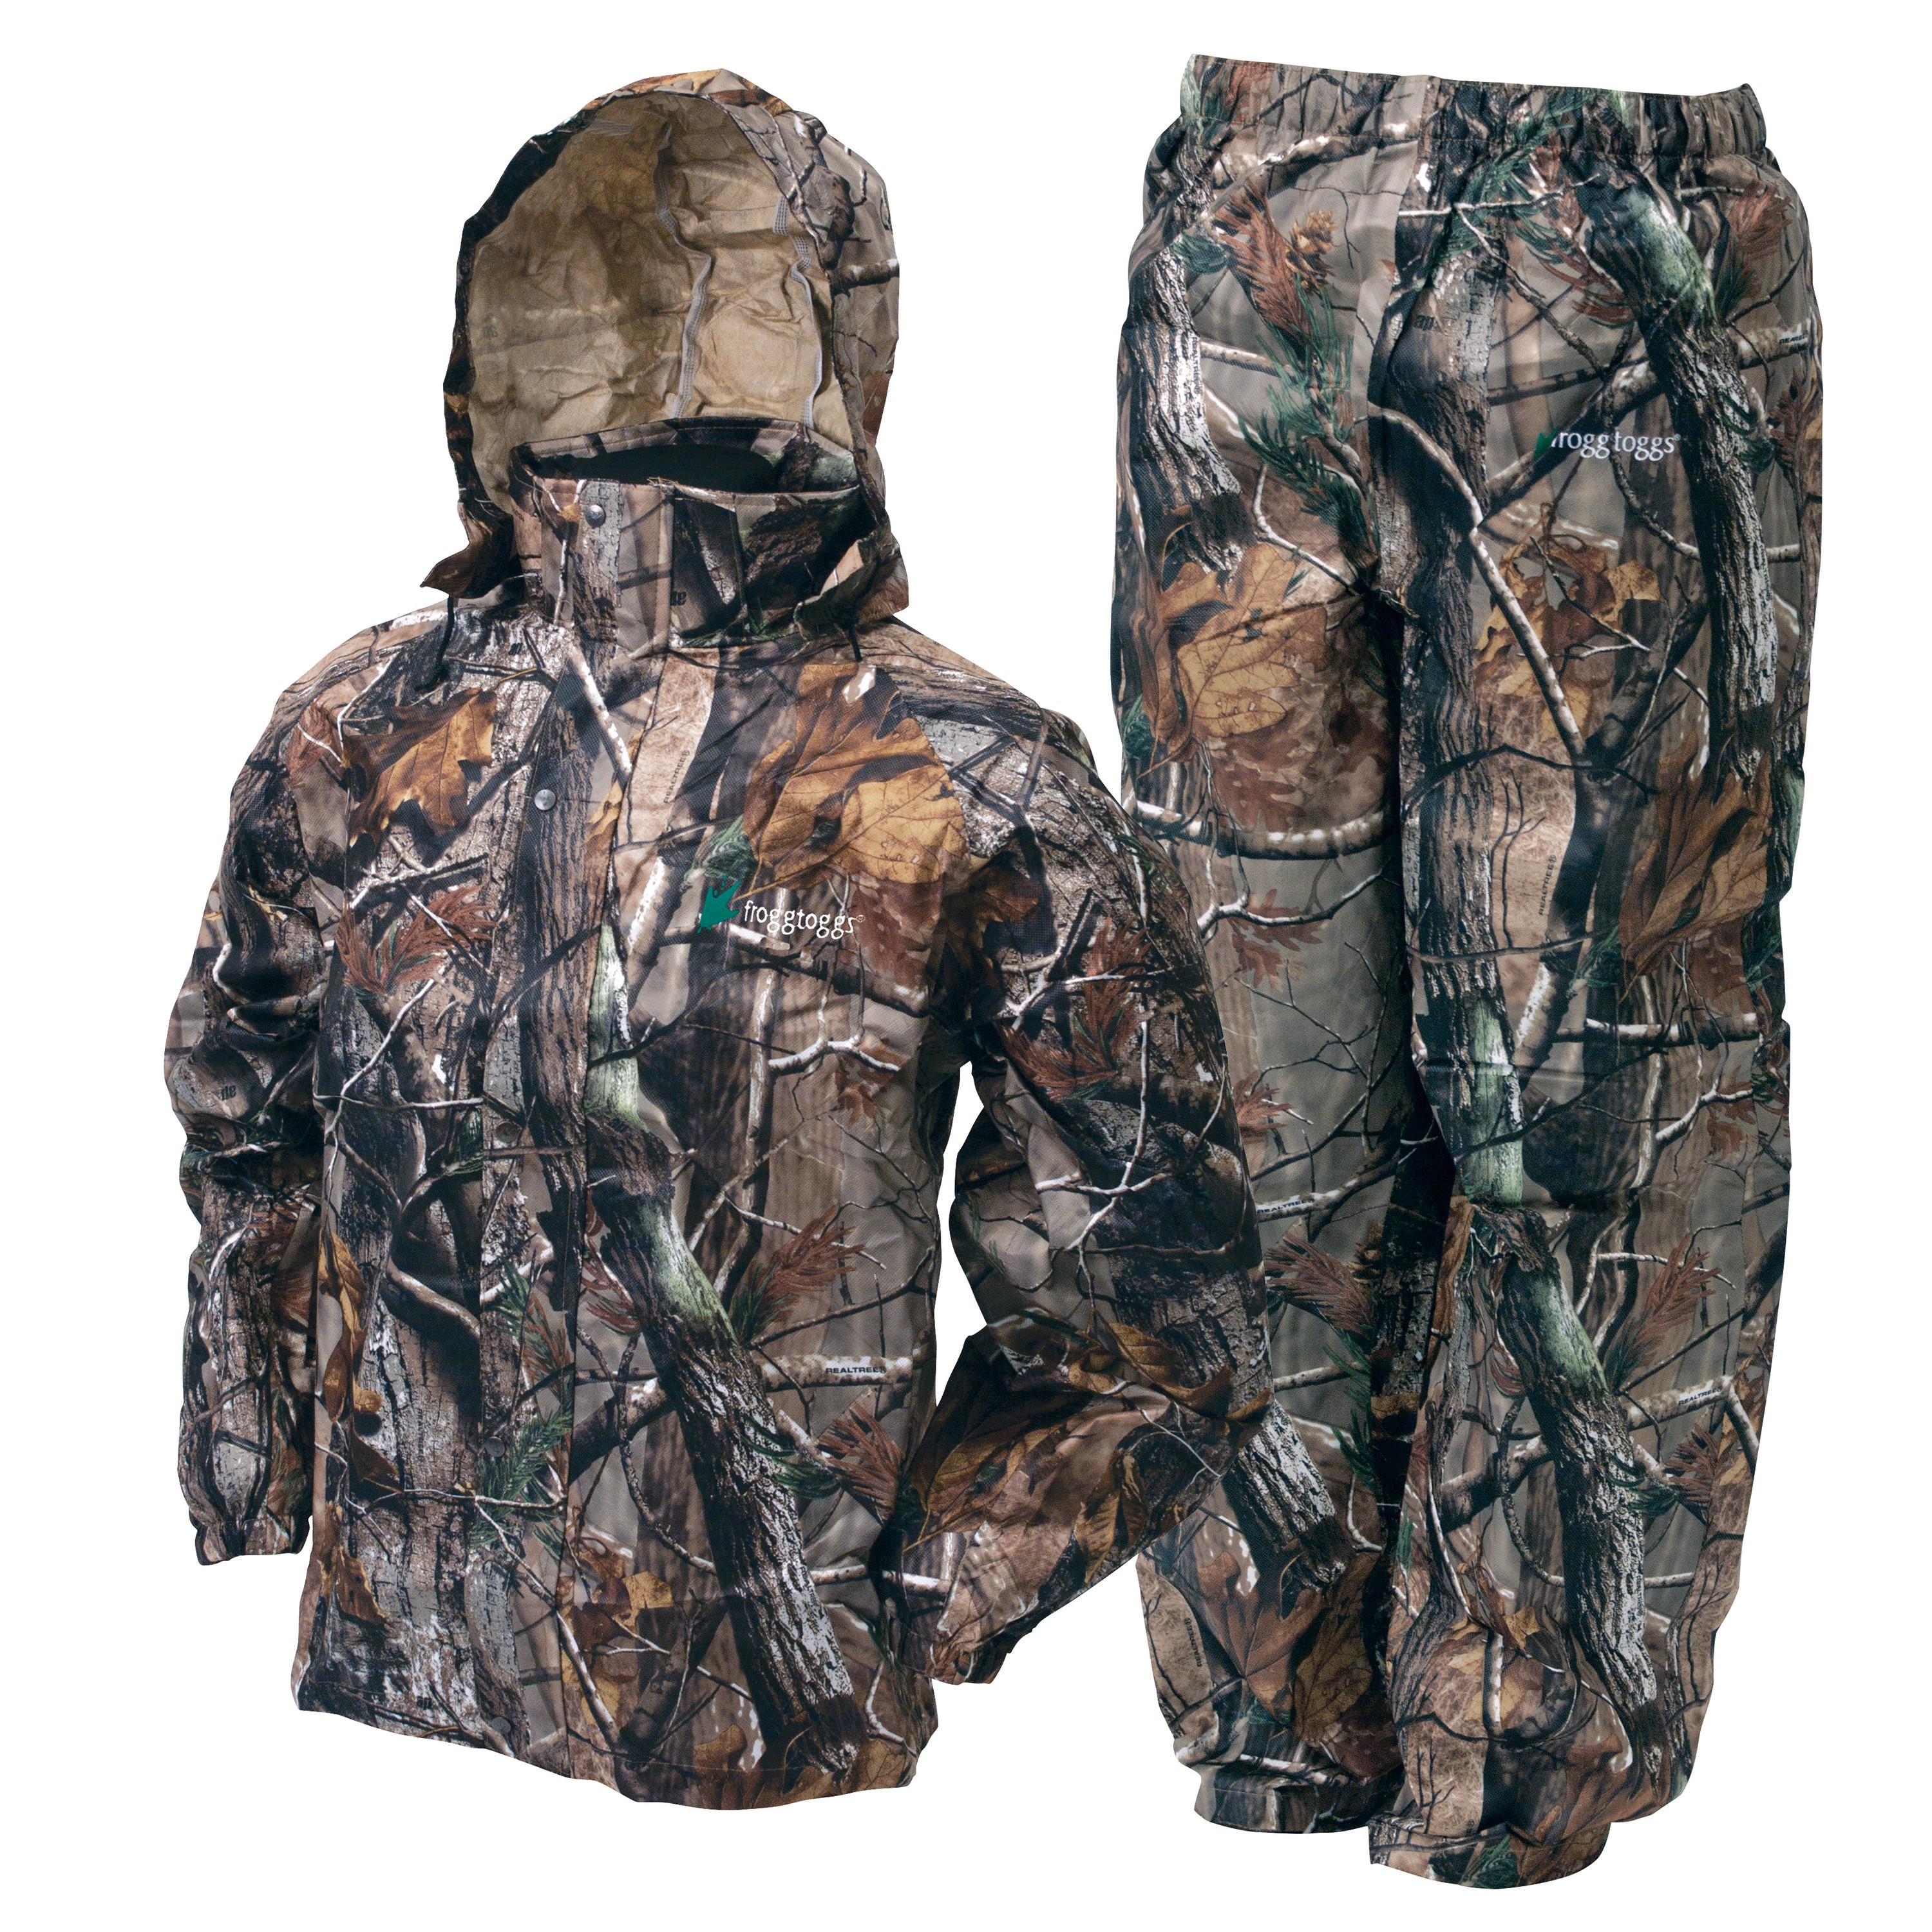 All Sports Camo Suit | Realtree Xtra | Size 2X